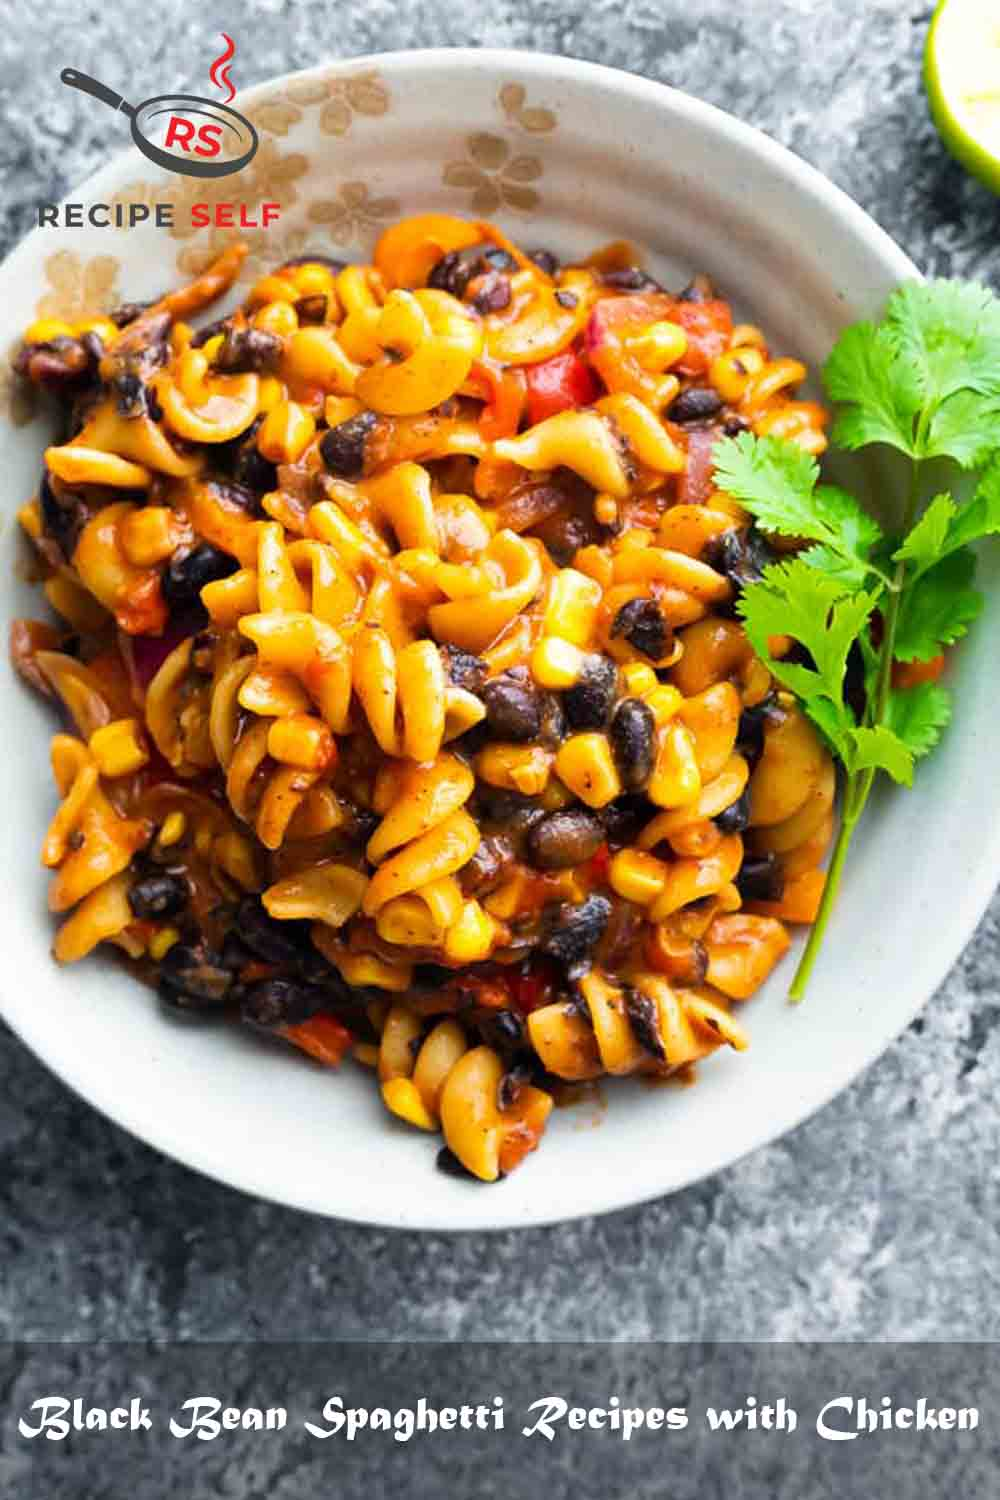 Black Bean Spaghetti Recipes with Chicken